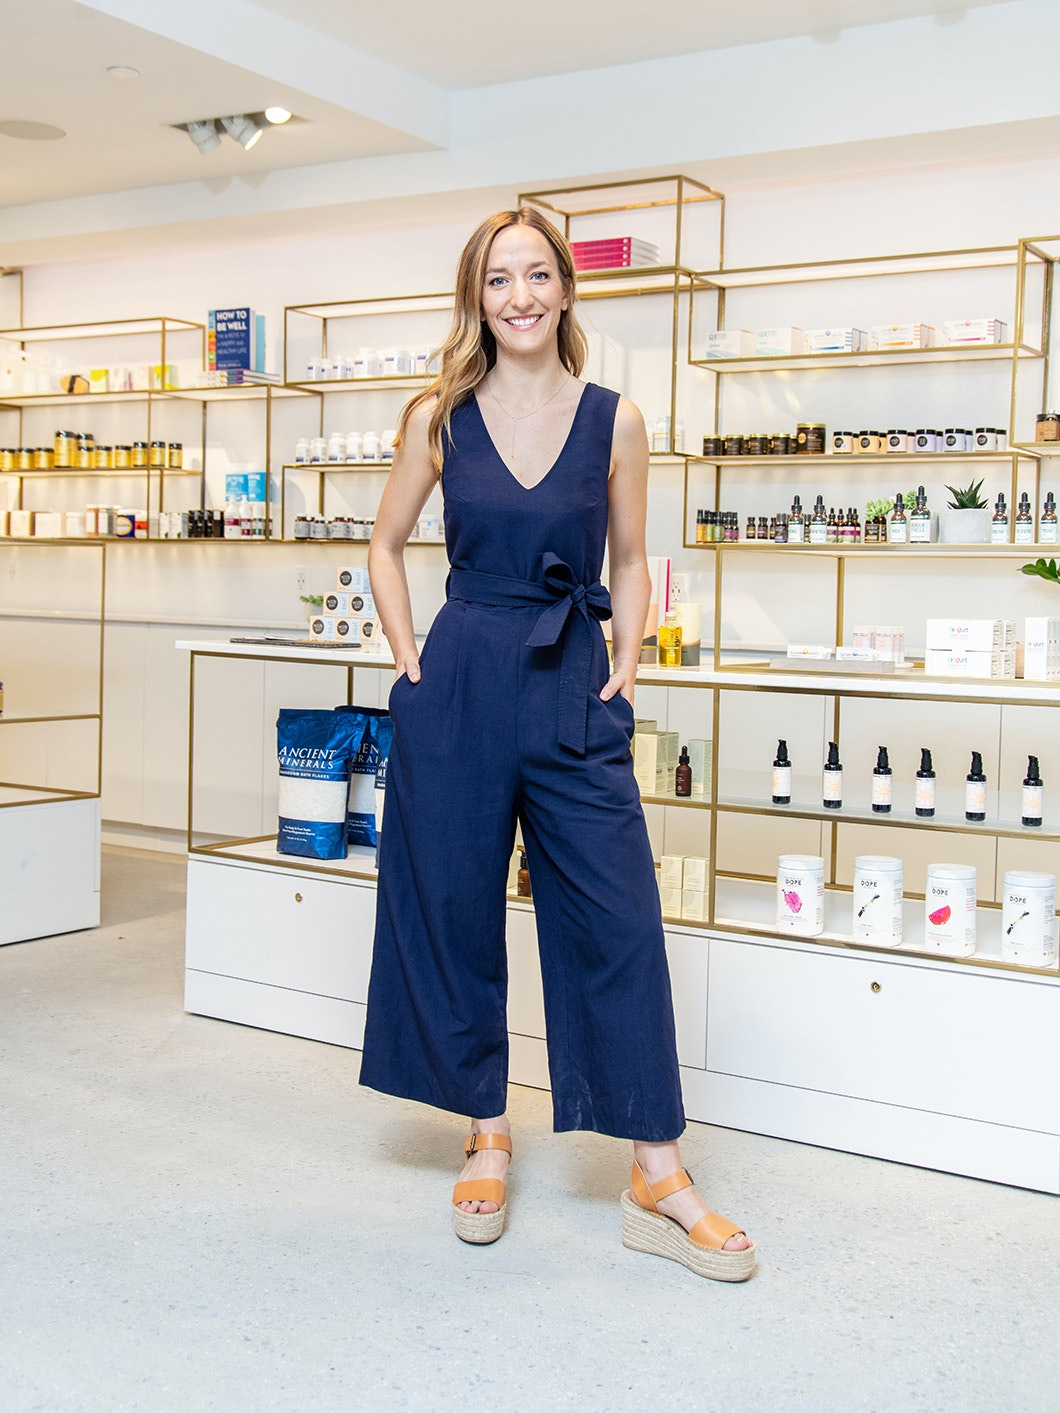 Clean Market Founder Lily Kunin